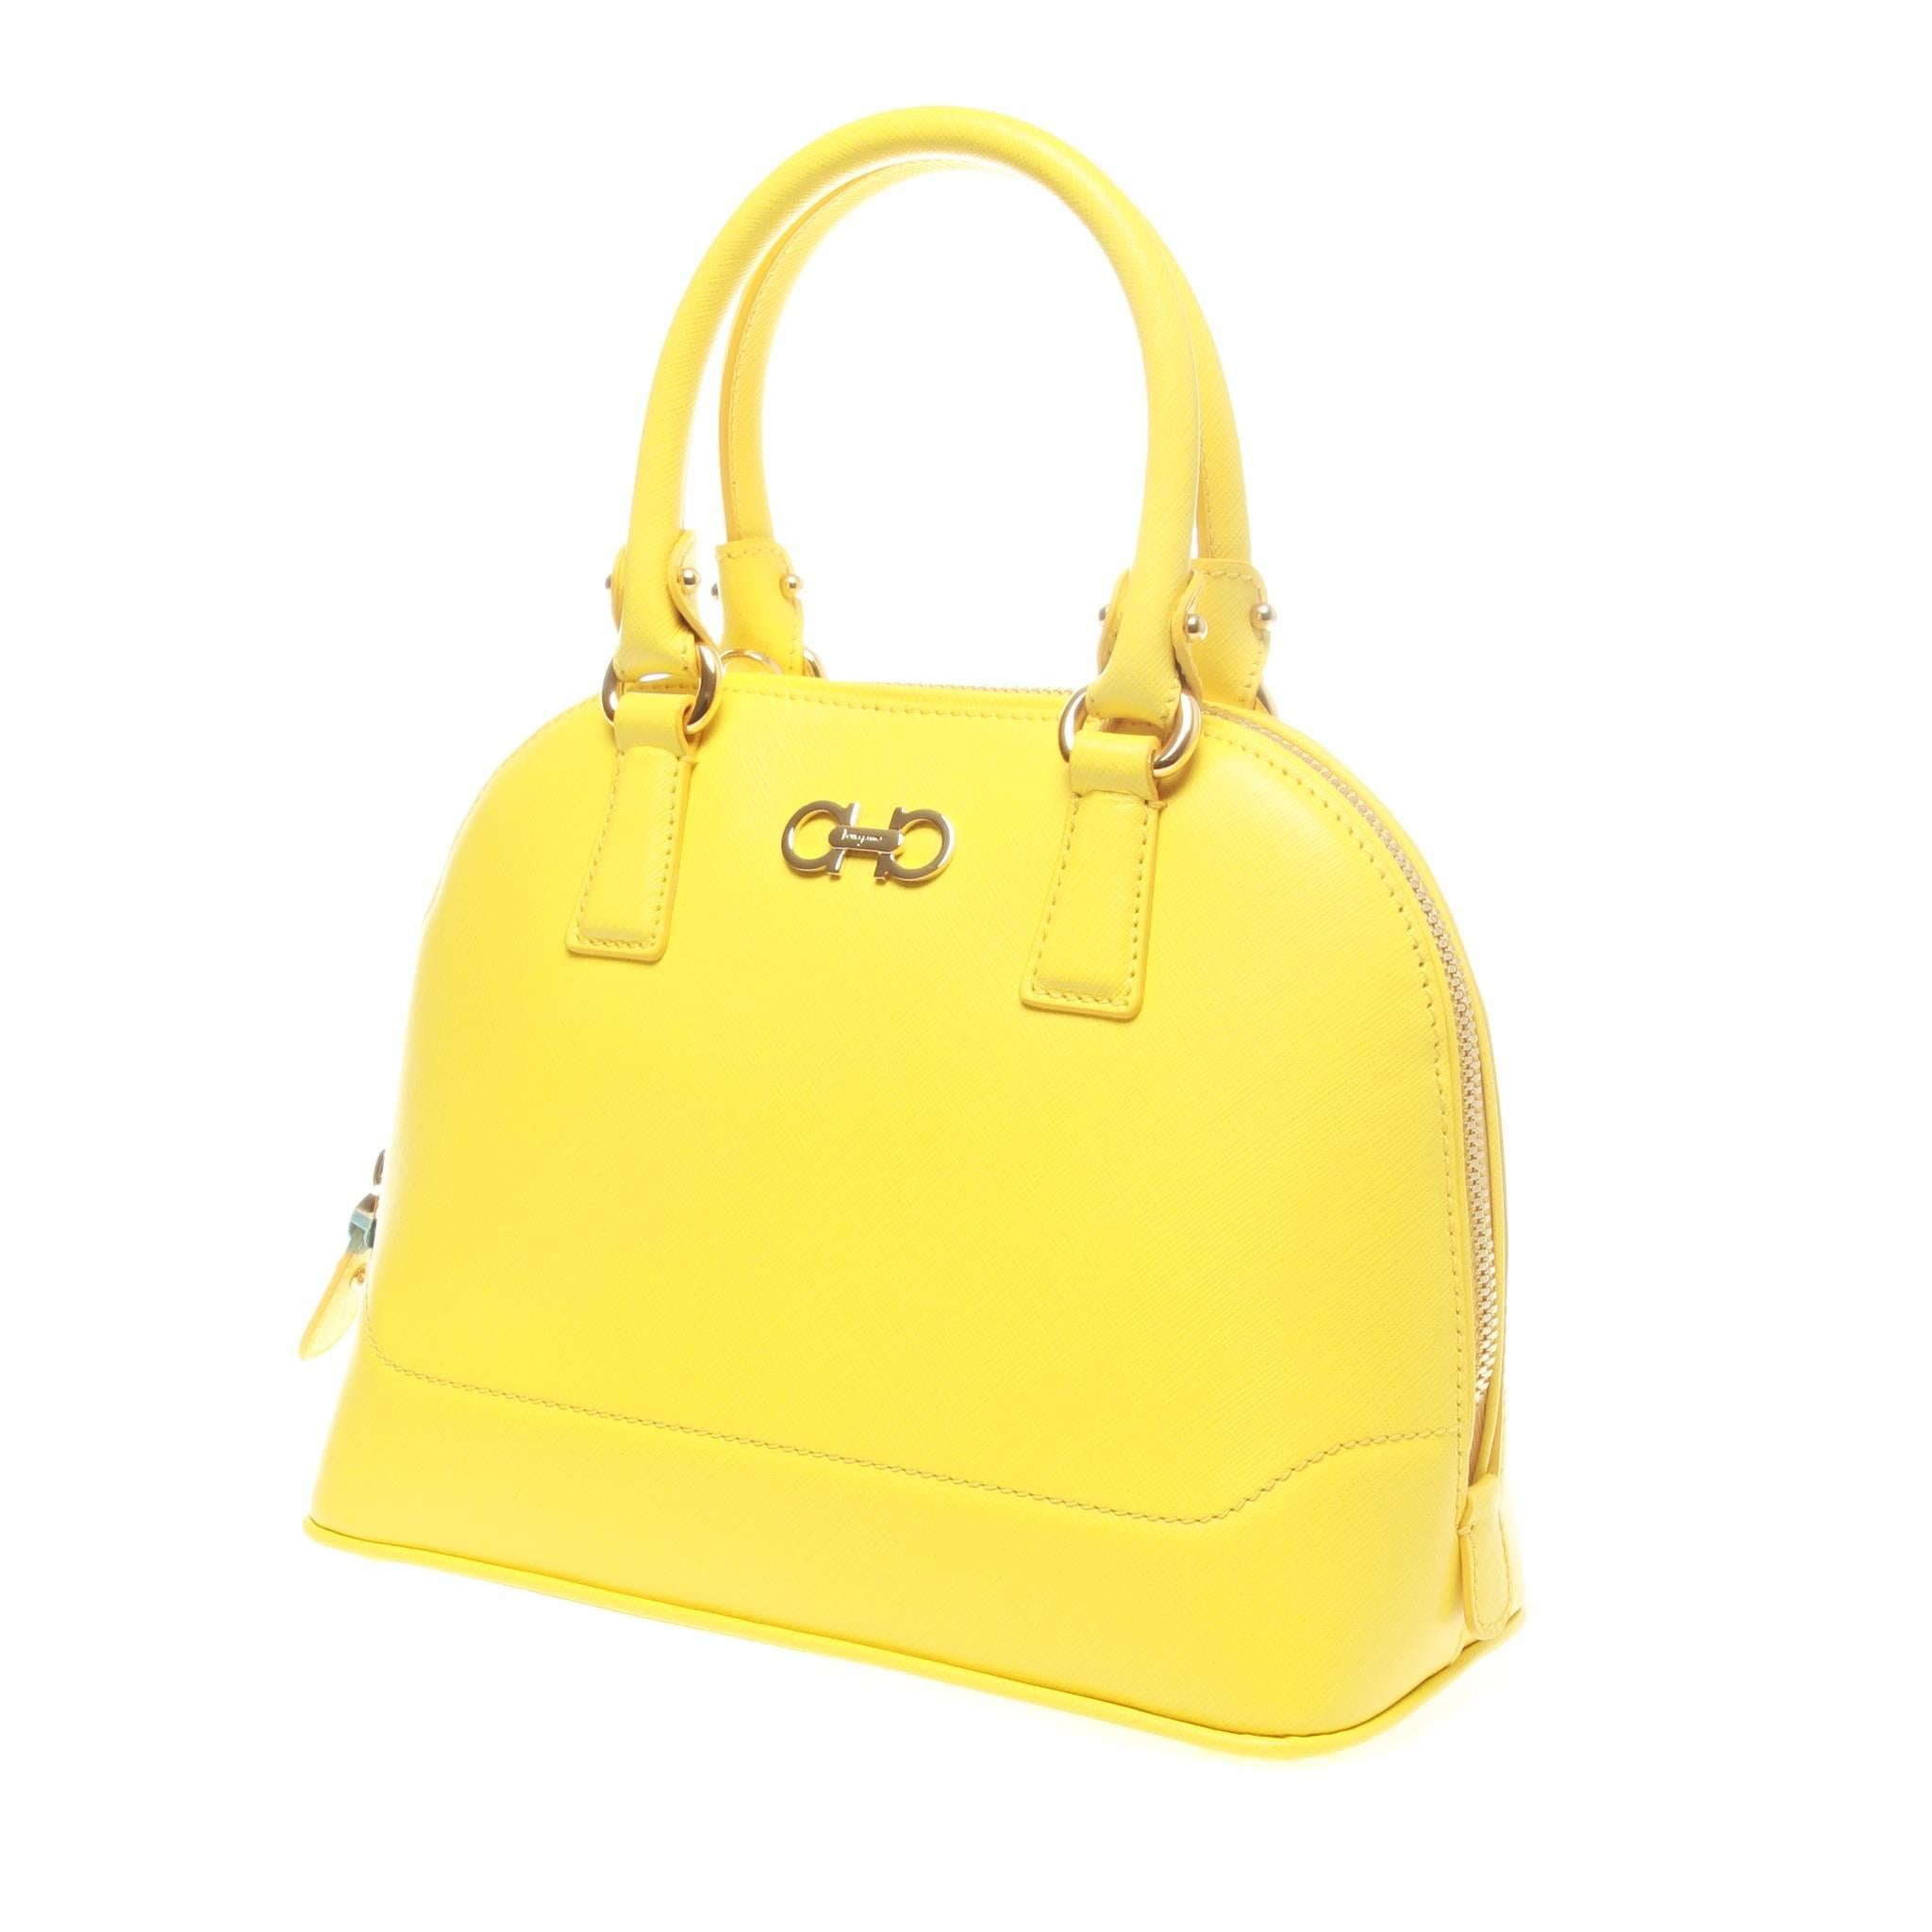 1stdibs Salvatore Ferragamo Yellow Darina Crossbody Bag 29I8VqK